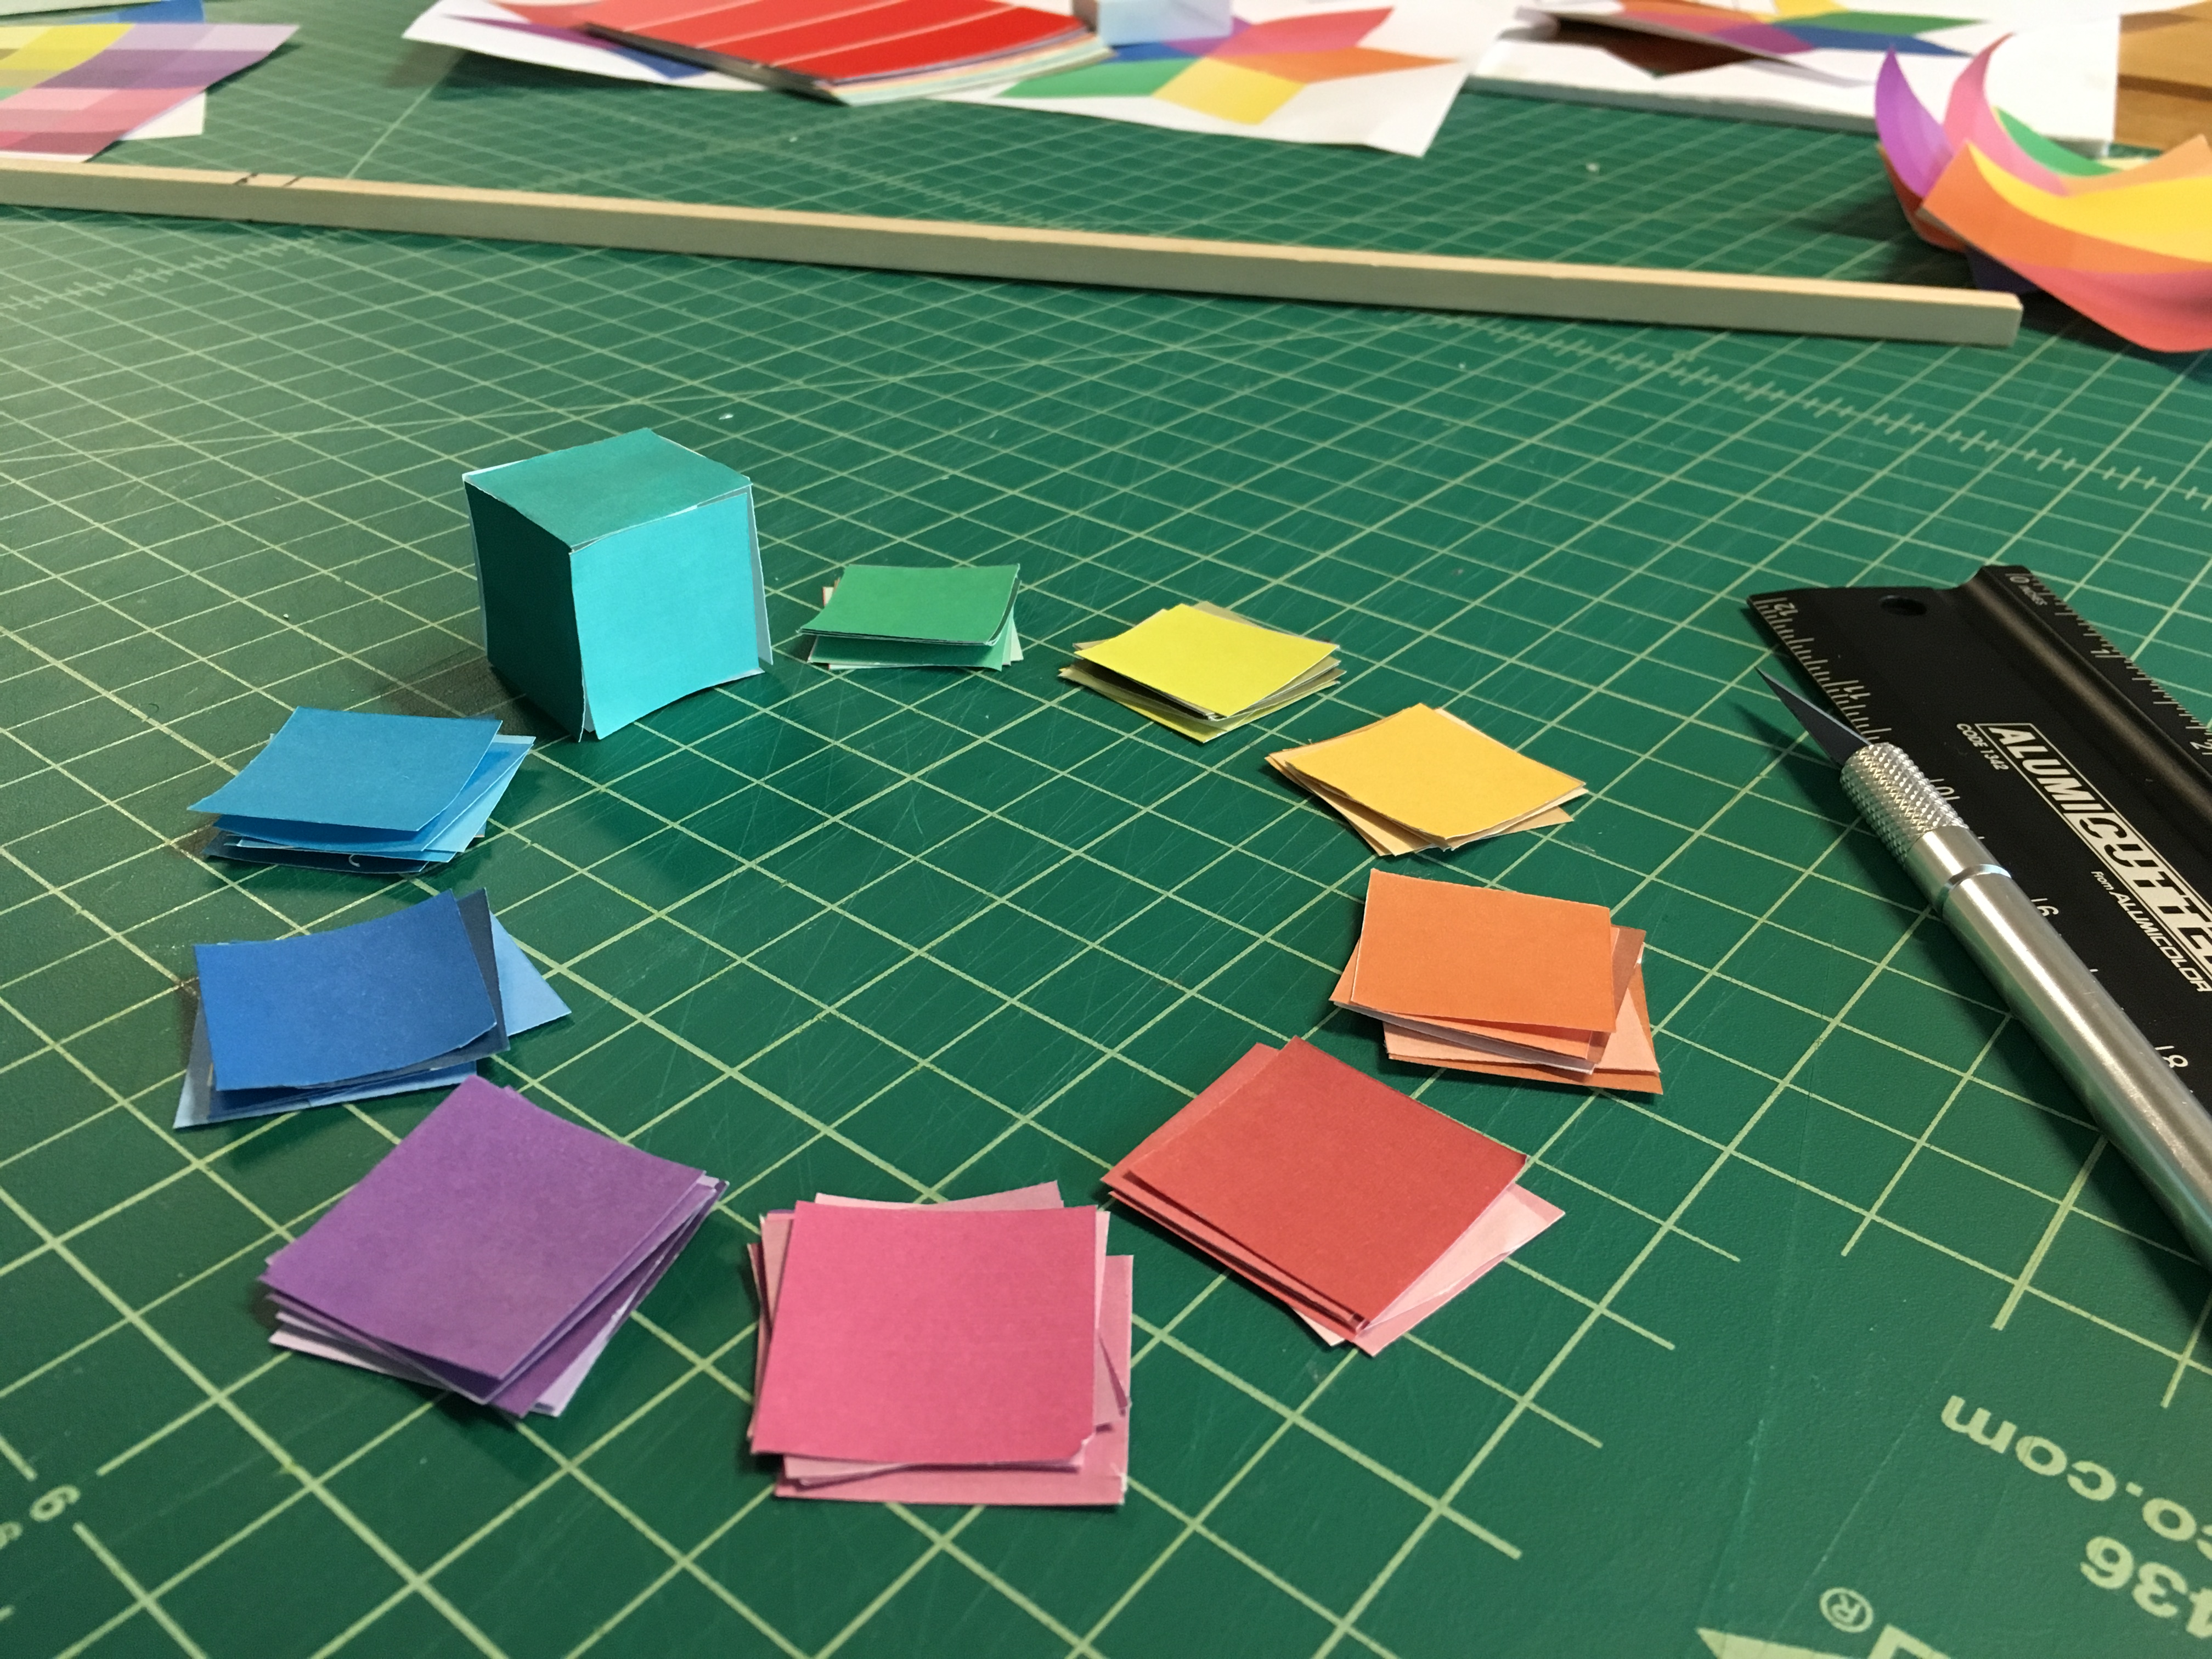 An early prototype of a color wheel made of dice, made of printed paper cut-outs glued together into cubes.